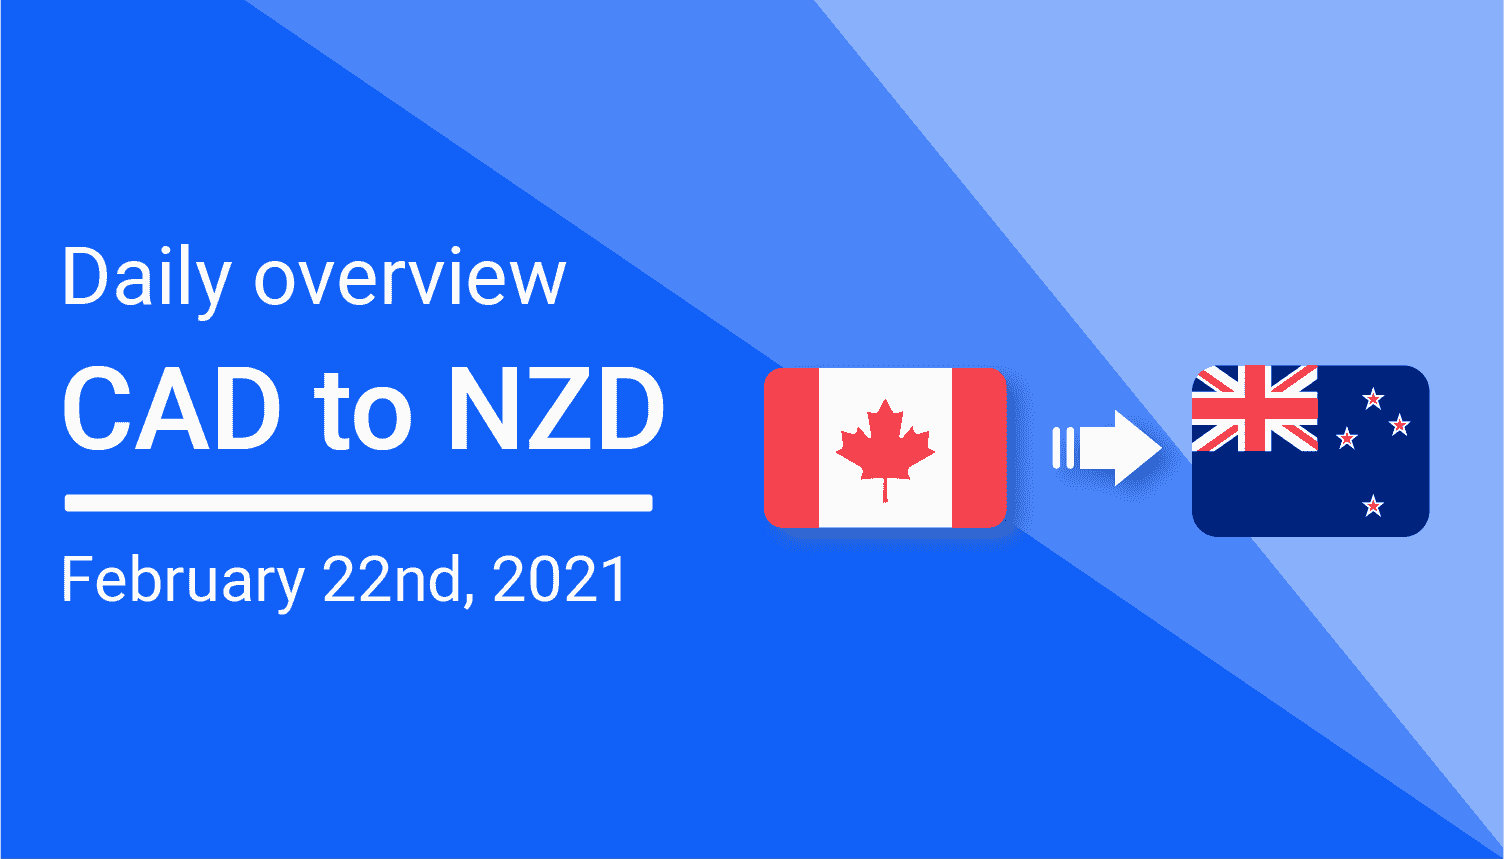 CAD to NZD Daily Overview: February 22nd